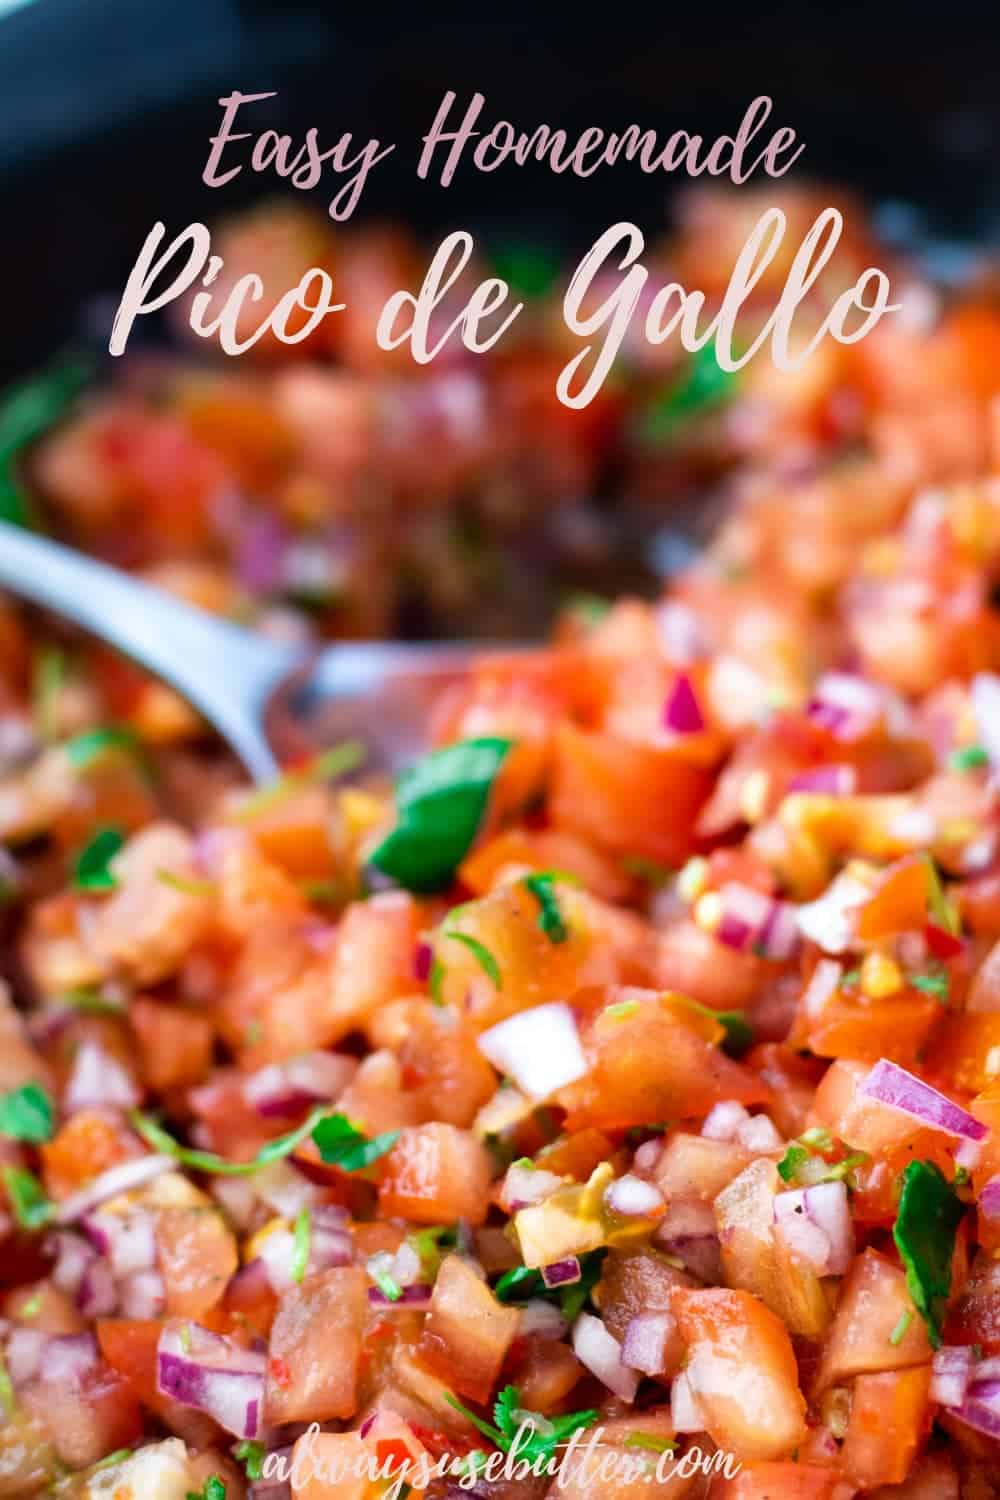 Pico de Gallo Salsa is healthy, easy to make & packed with flavor and just the right amount of spice. Use it for tacos, fish, meat or for tortilla chips! #picodegallo #alwaysusebutter